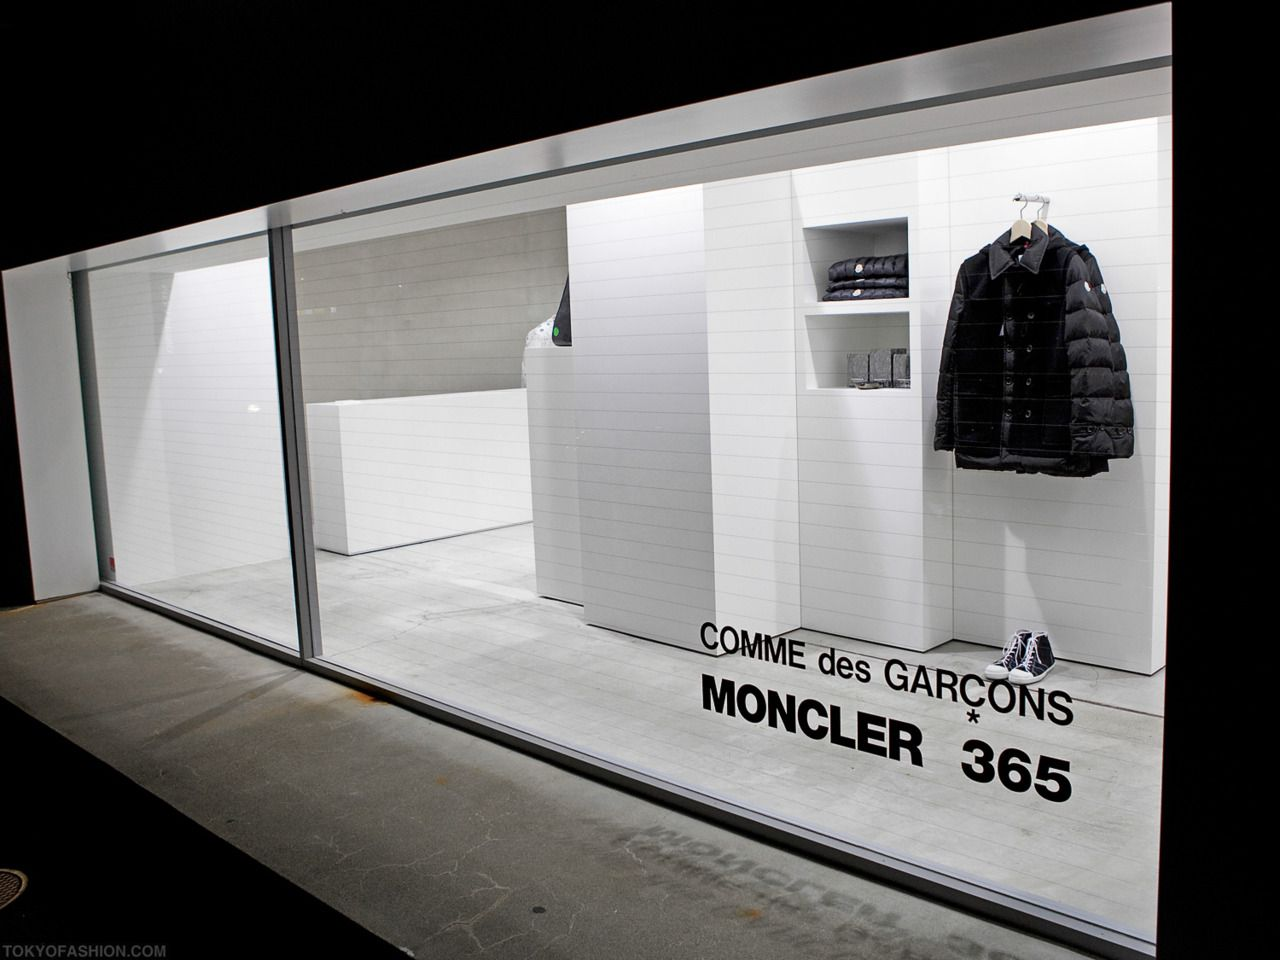 Car sticker design shop - Moncler 365 Black And White Storefront Window Display Display Designstore